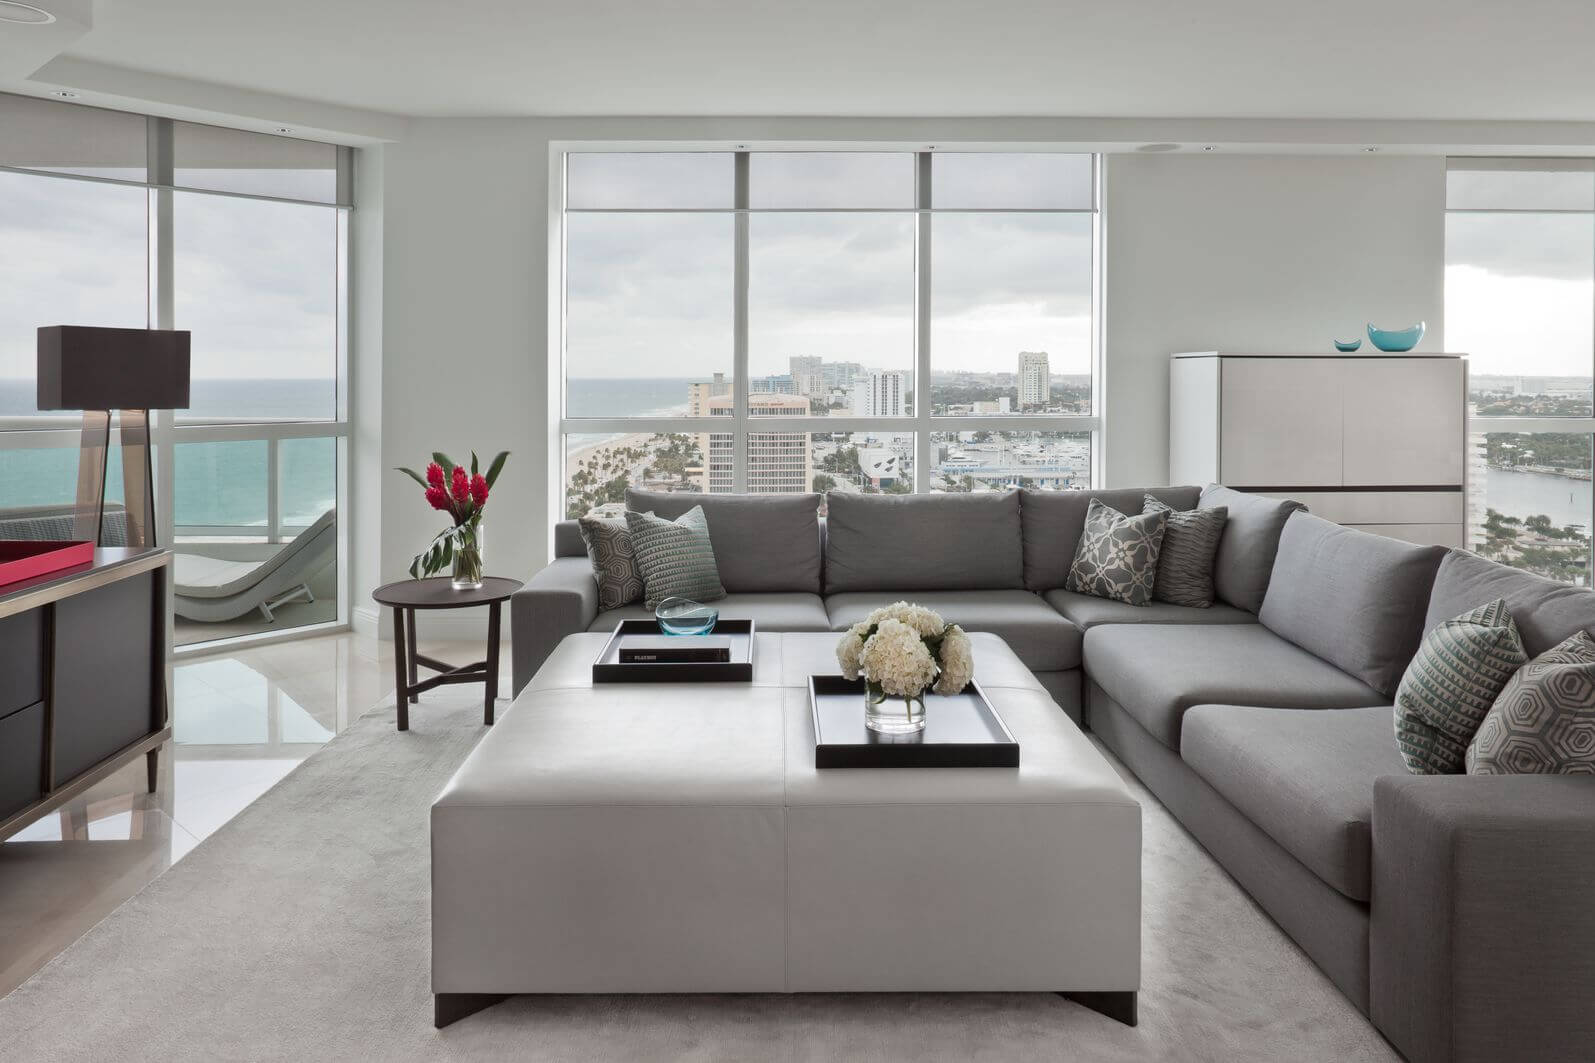 Wonderful This Modern Living Room, Naturally Lit Via Floor To Ceiling Windows,  Features Immense White